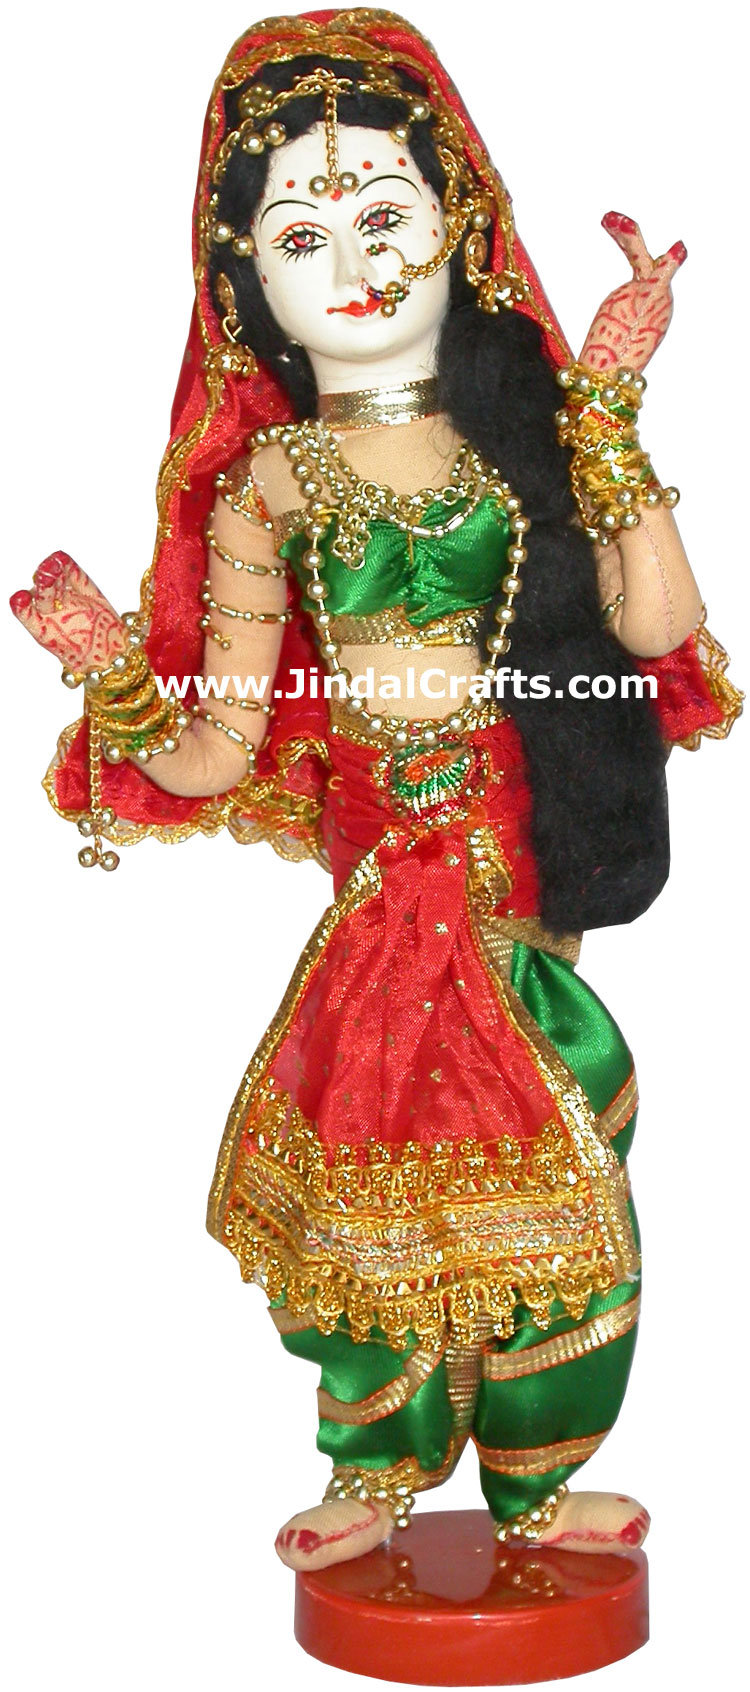 Handmade Traditional Indian Collectible Costume Doll Home